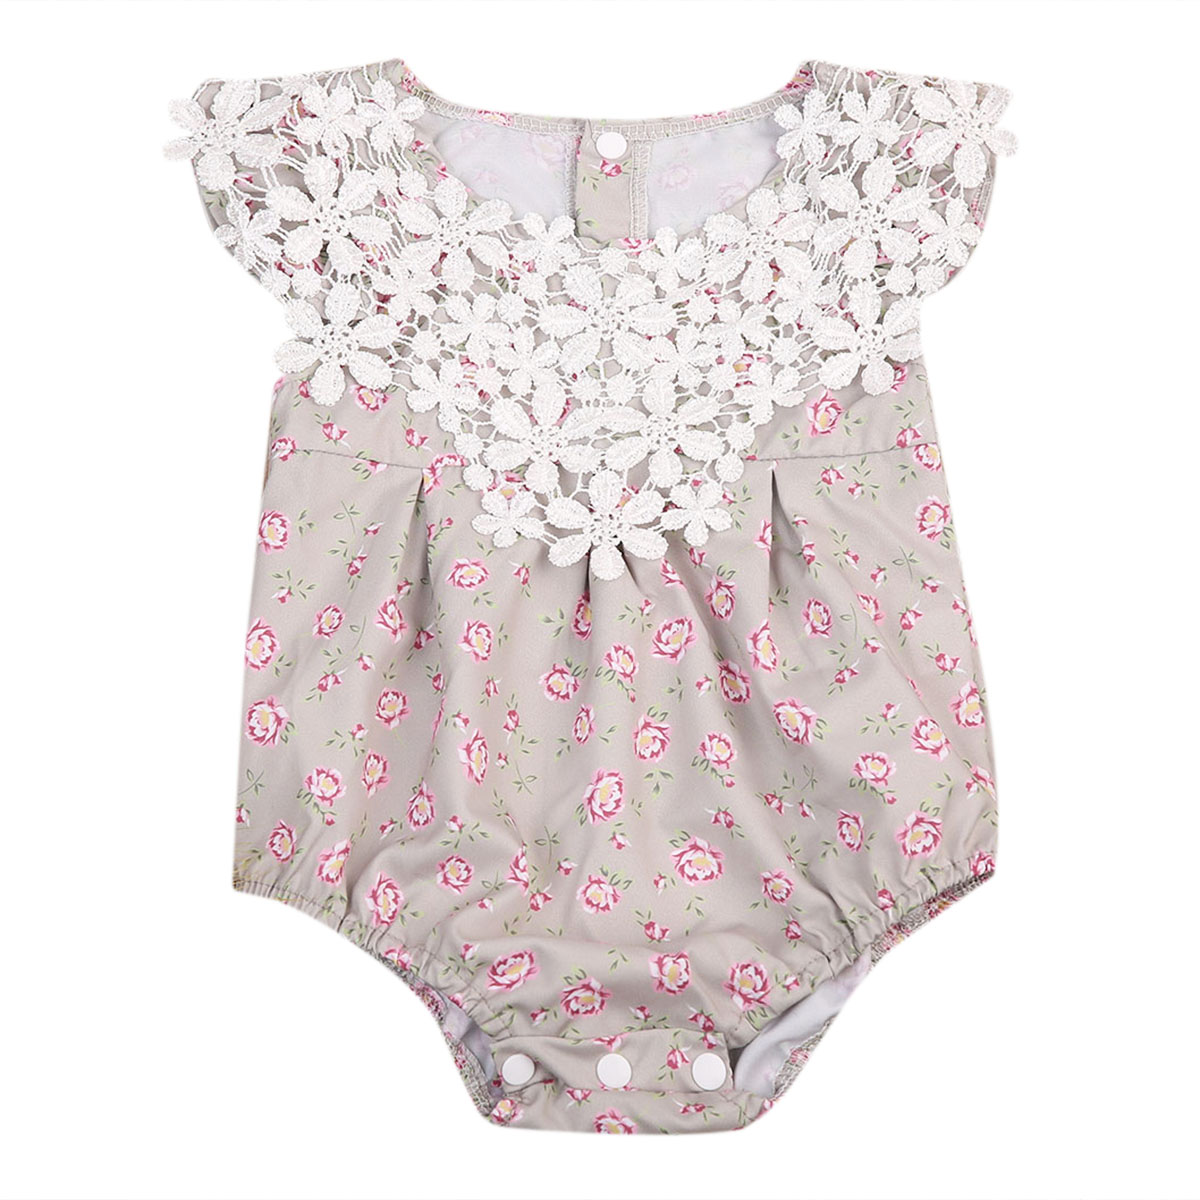 Newborn Toddler Baby Girl Flower Romper Jumpsuit Sunsuit Outfit kids clothes bodysuit baby girl clothes Clothes